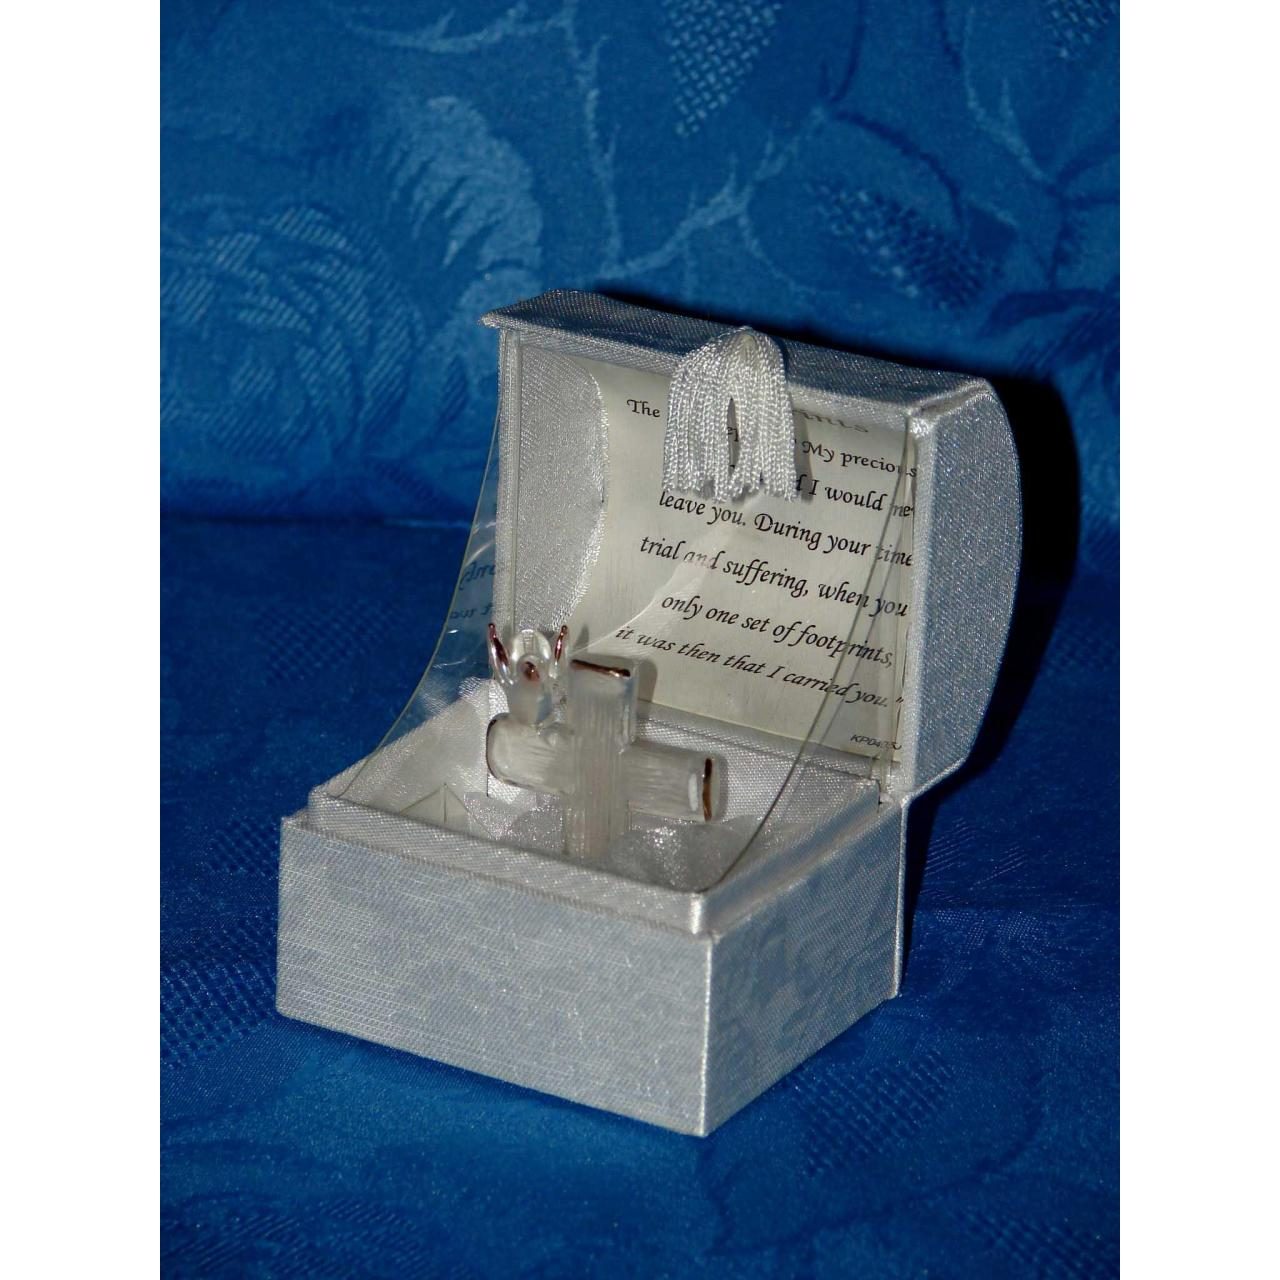 Buy cheap page Commemorative Religious Keepsake. product